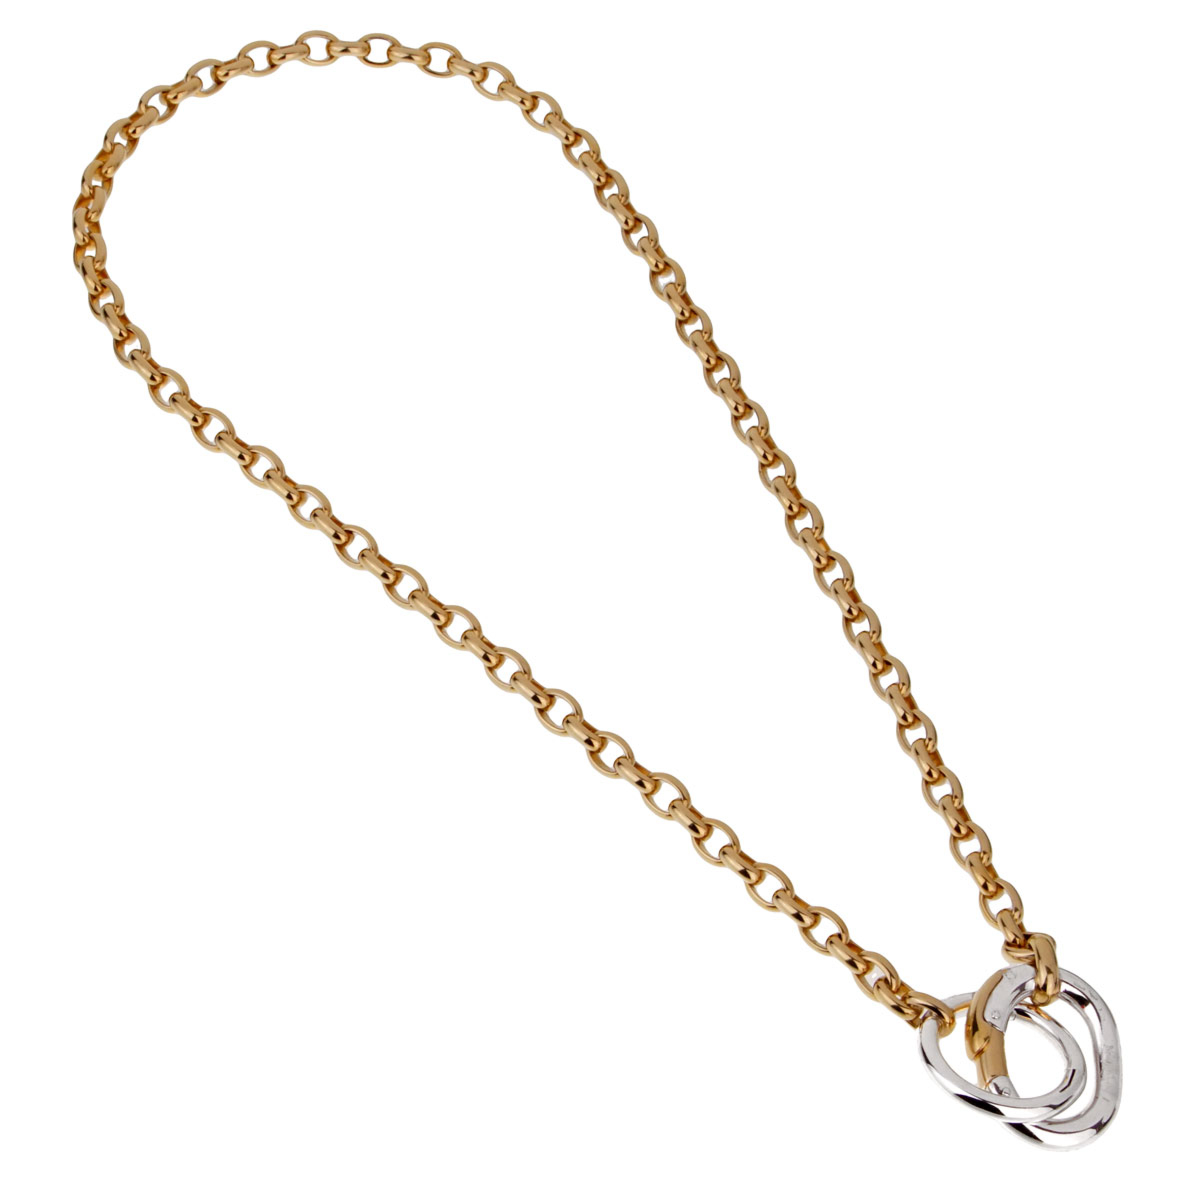 Pomellato Chain Link Yellow Gold Necklace - Pomellato Jewelry